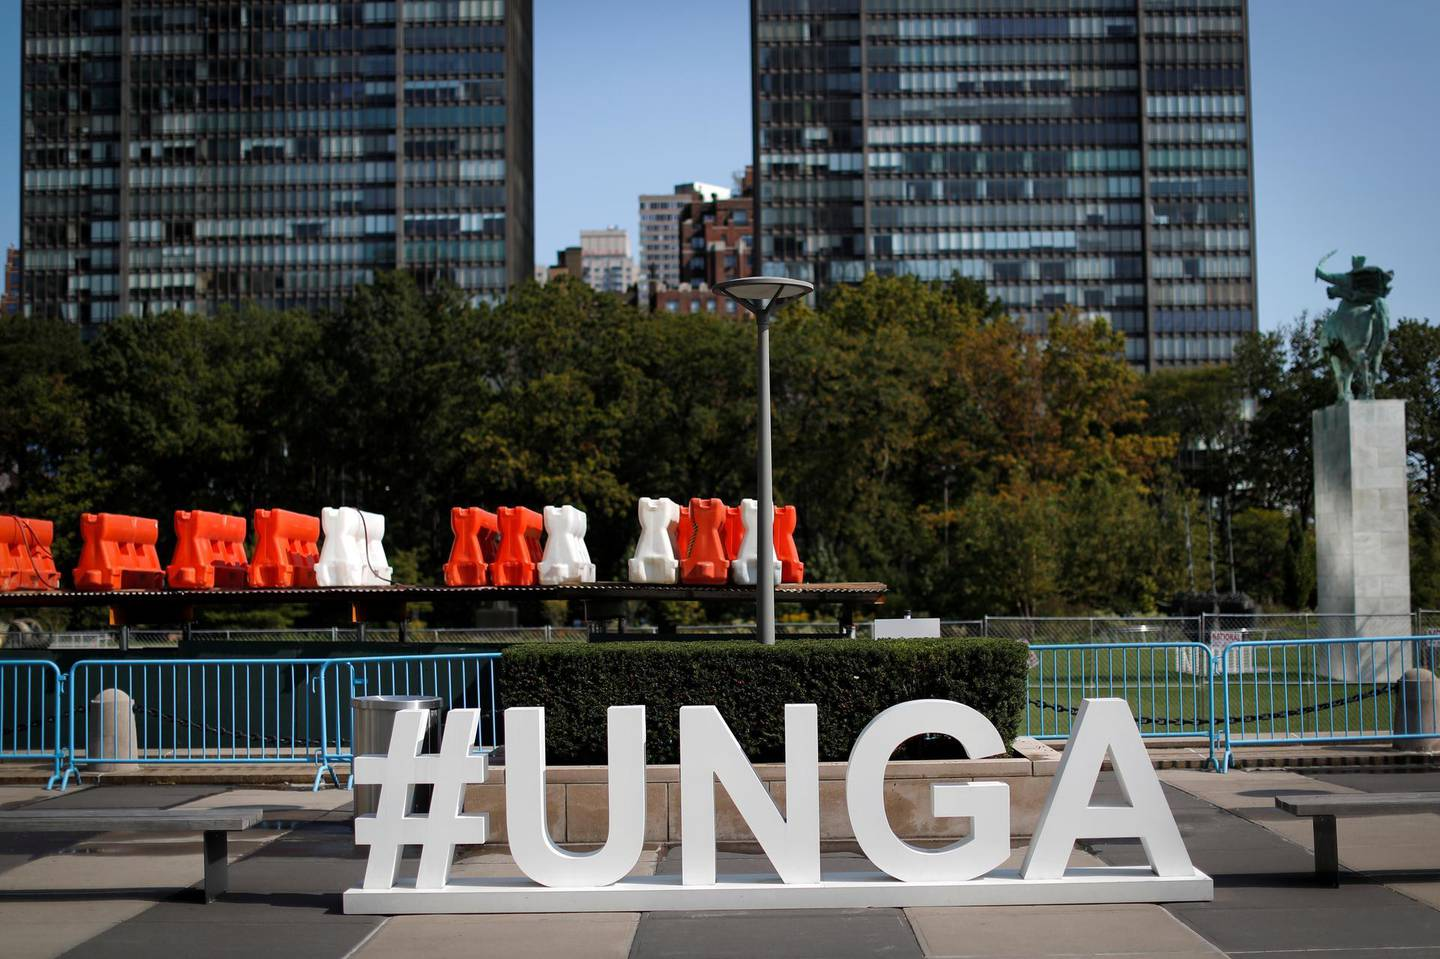 A sign sits in the empty North entrance plaza at United Nations headquarters during the 75th annual U.N. General Assembly high-level debate, which is being held mostly virtually due to the coronavirus disease (COVID-19) pandemic in New York, U.S., September 21, 2020. REUTERS/Mike Segar